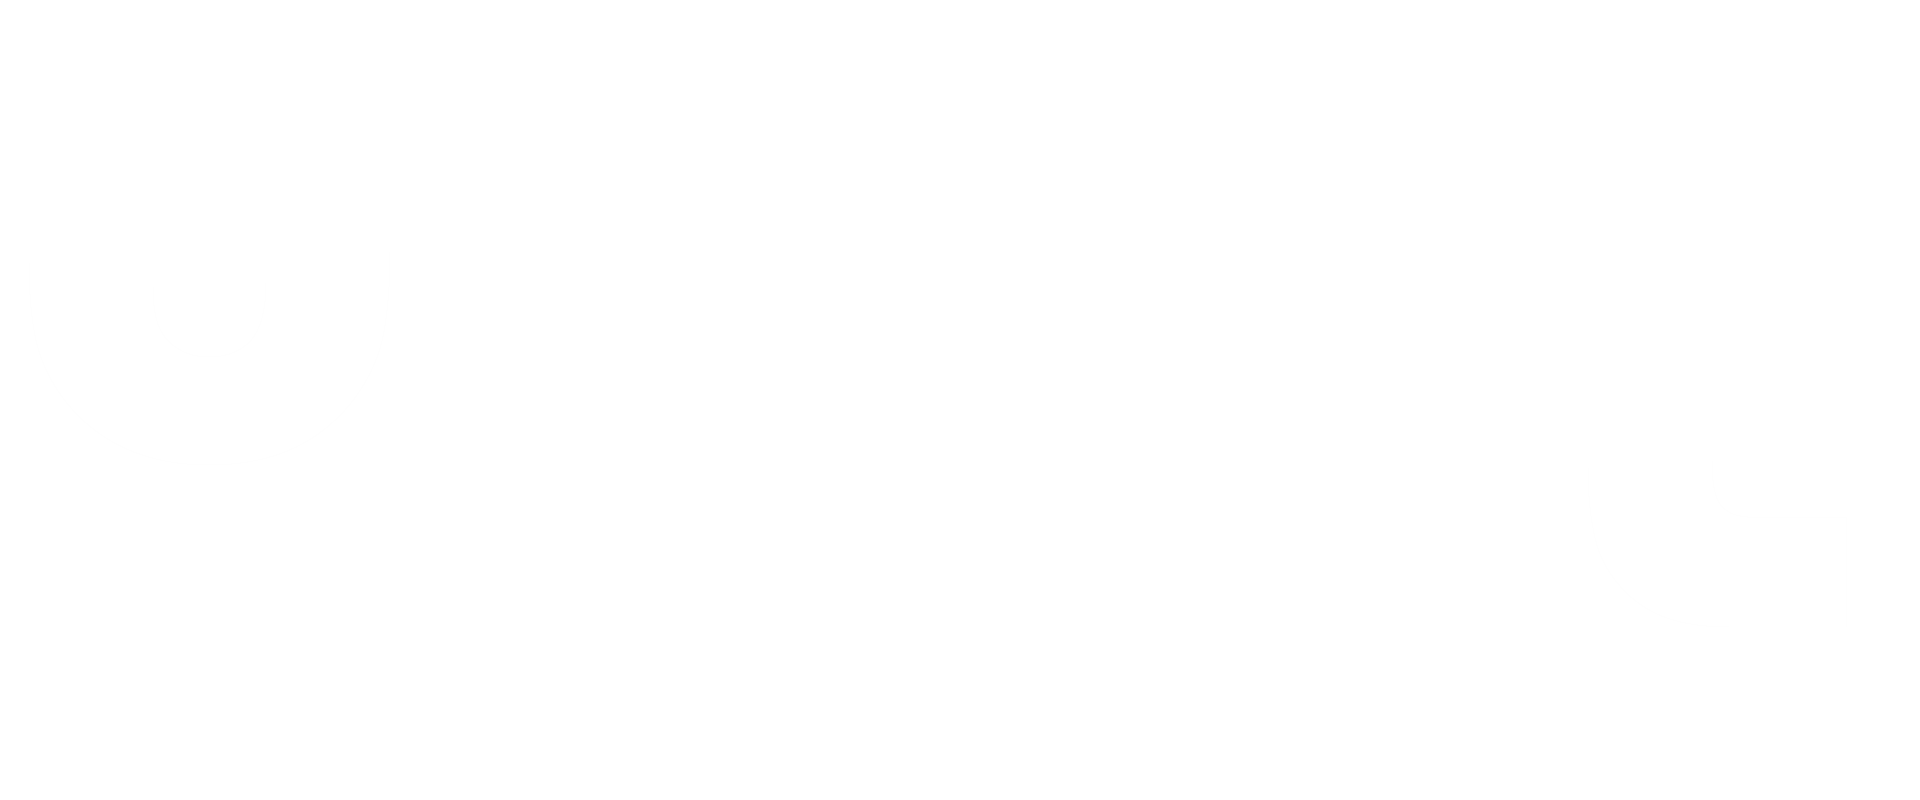 Yellit_text(vector bg).png